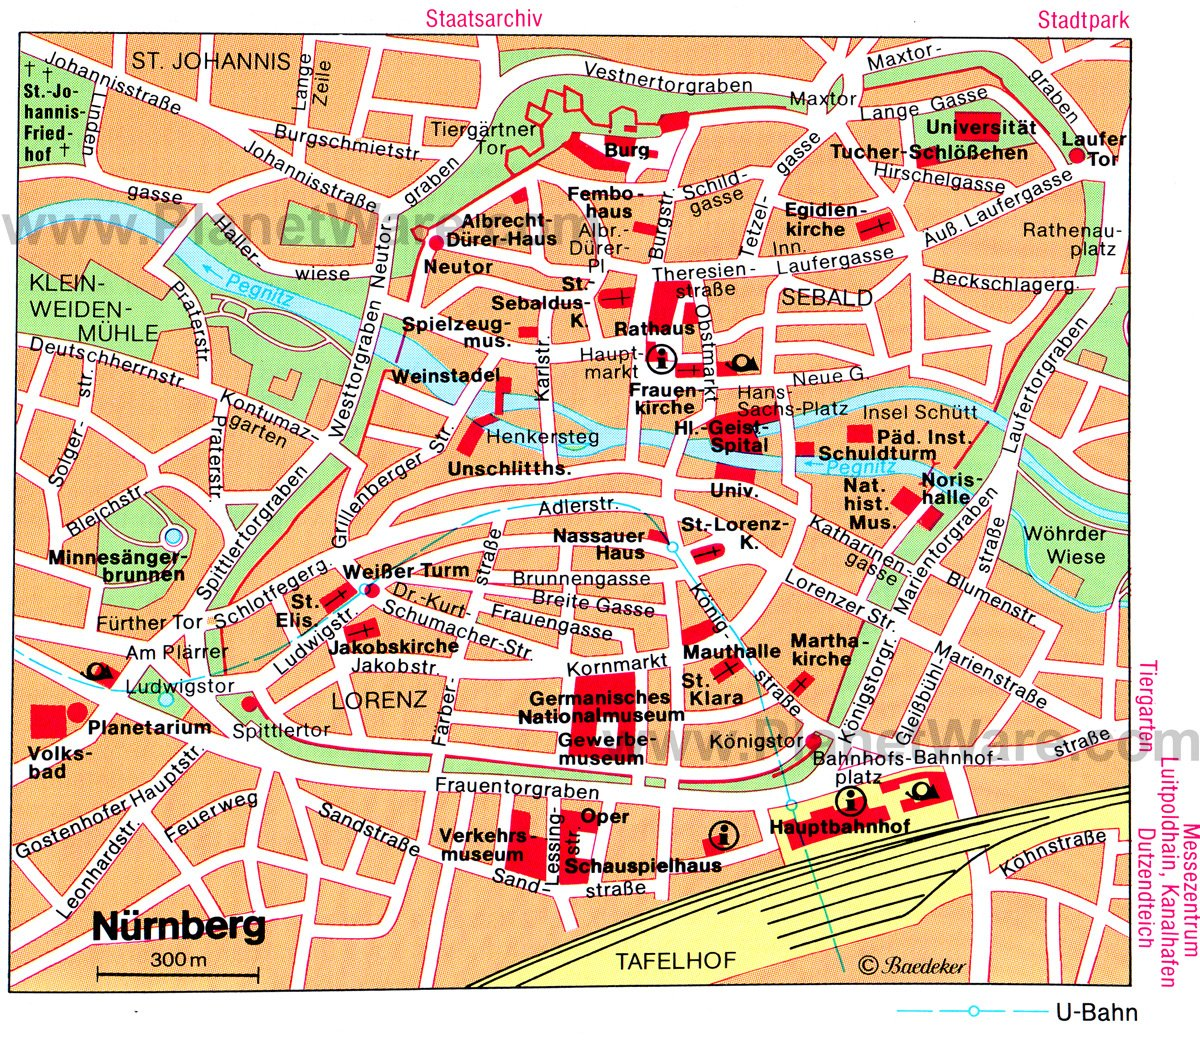 12 Top Tourist Attractions in Nuremberg and Easy Day Trips – Munich City Map Tourist